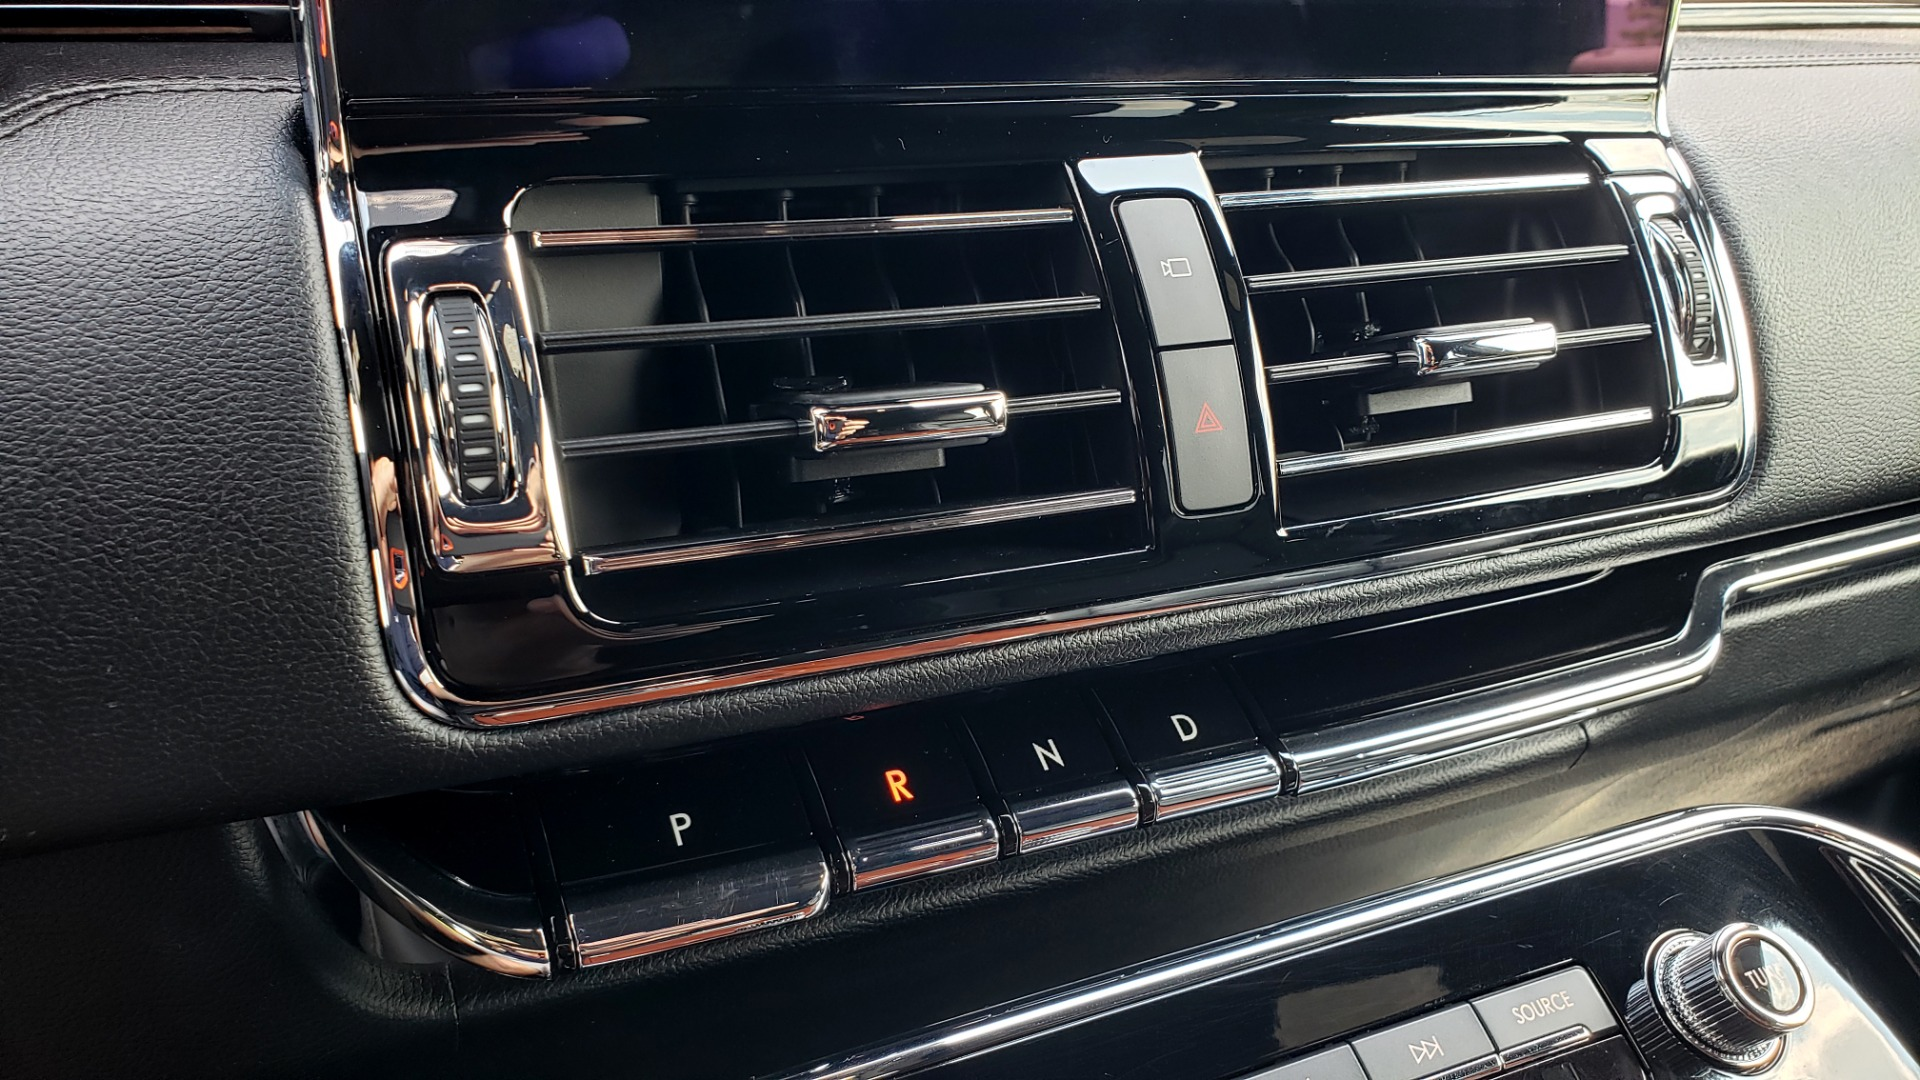 Used 2019 Lincoln NAVIGATOR RESERVE 4X4 / NAV / PANO-ROOF / REVEL ULTIMA AUDIO / 3-ROW / REARVIEW for sale $74,795 at Formula Imports in Charlotte NC 28227 54